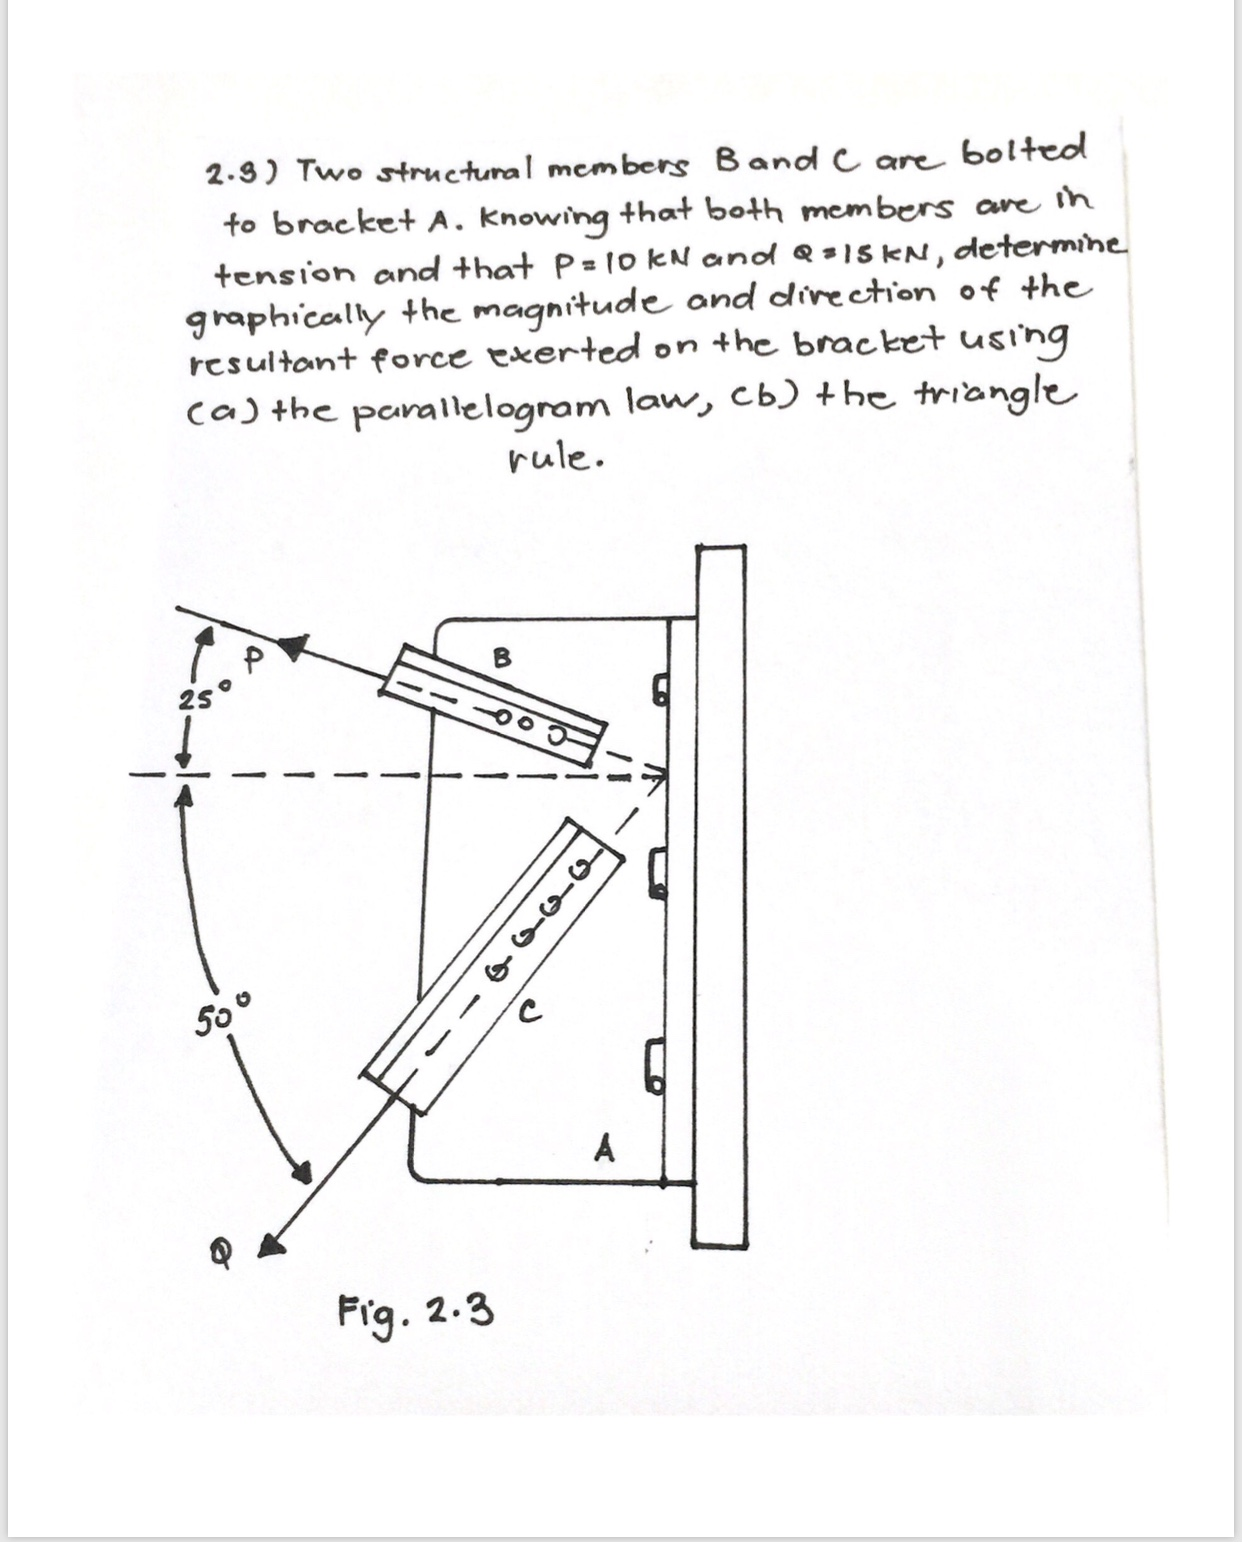 bolteo 2.9) Two structunal members Band C are to bracket A. knowing that both members are ih tension and that P= 1o kN andd = 15 KN, determine graphically the magnitude and direction of the resultant force exerted on the bracket using caj the parallelogram law, cb) +he triangle rule 2S A Frg 2.3 o-n-q